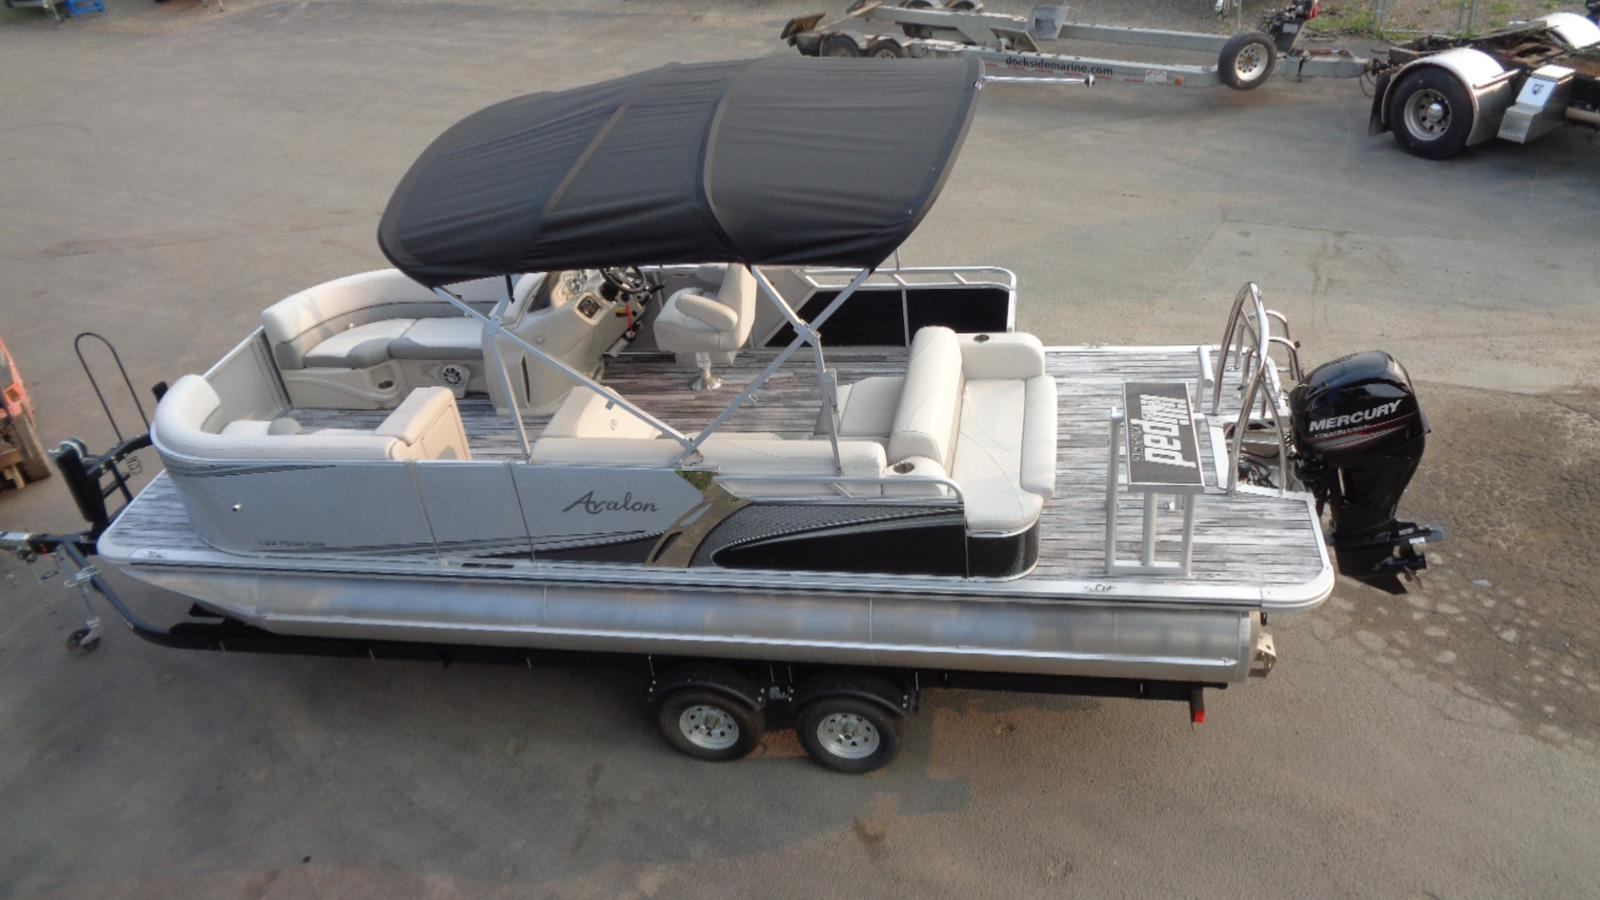 For Sale: 2018 Avalon Lsz 2285 Crb 25ft<br/>Dockside Marine Centre, LTD.